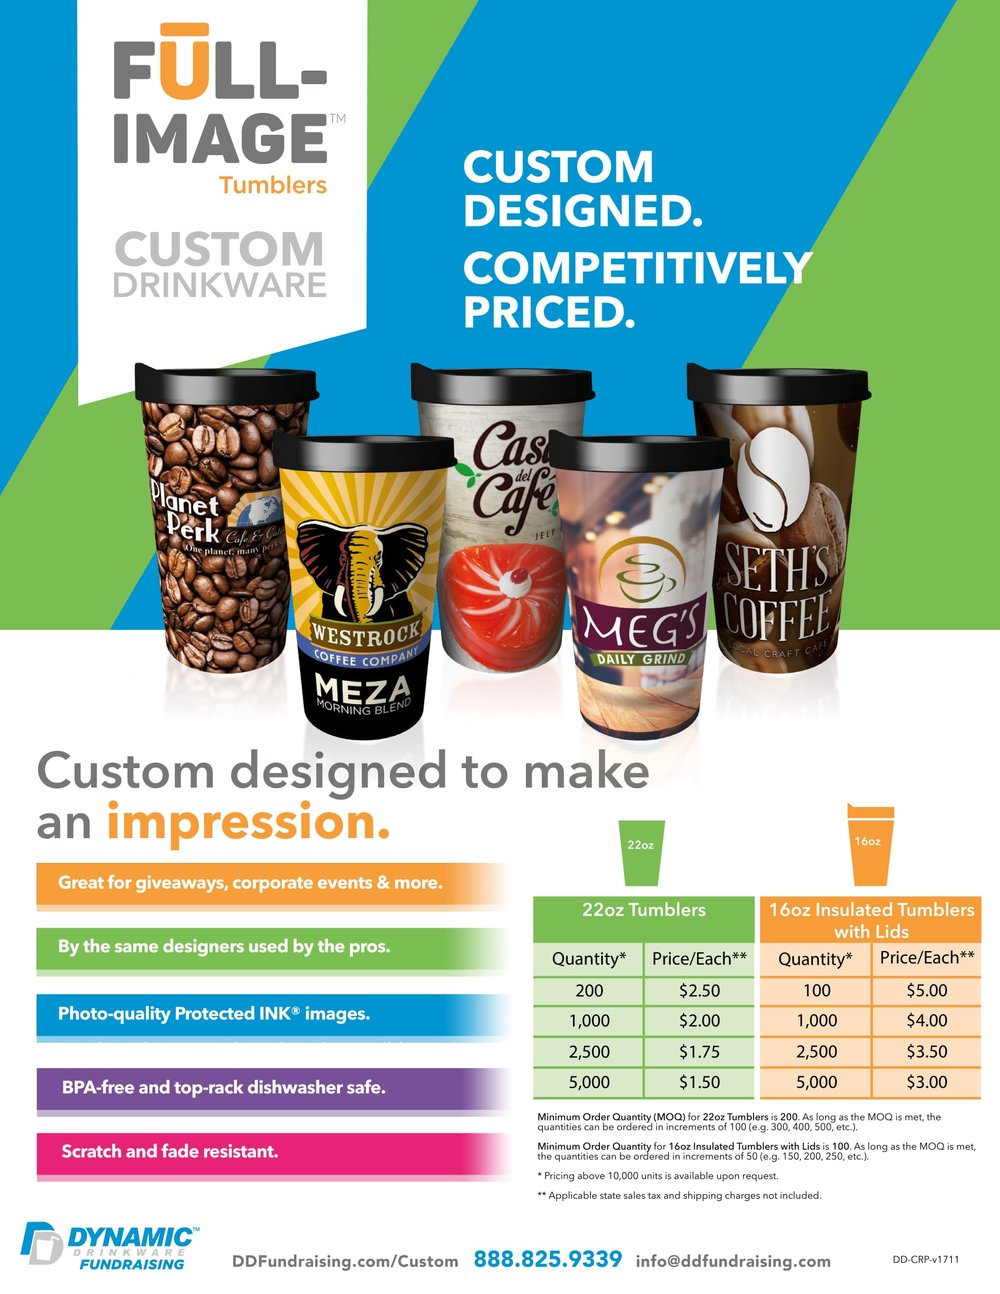 Custom-Drinkware-Coffee-1.jpg